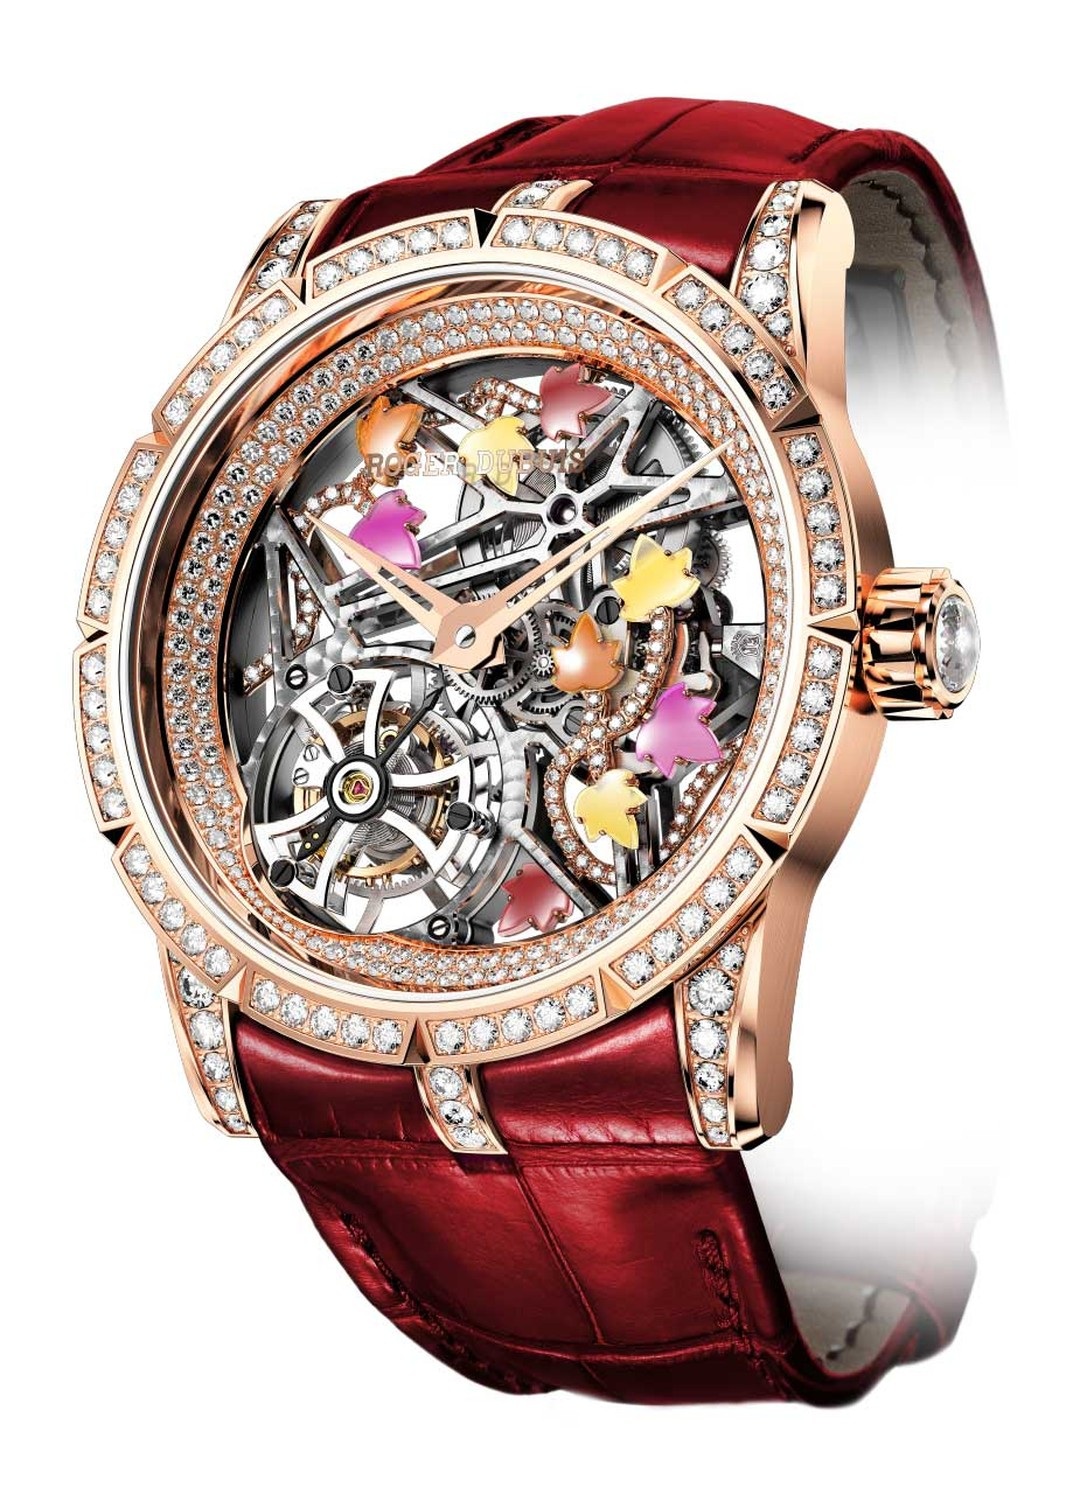 Roger Dubuis watches transports us back to the Arthurian fantasy forest with the Excalibur Creative Skeleton Brocéliande ladies' watch. A trellis of colourful ivy leaves entwine themselves around the skeletonised architecture of the watch.